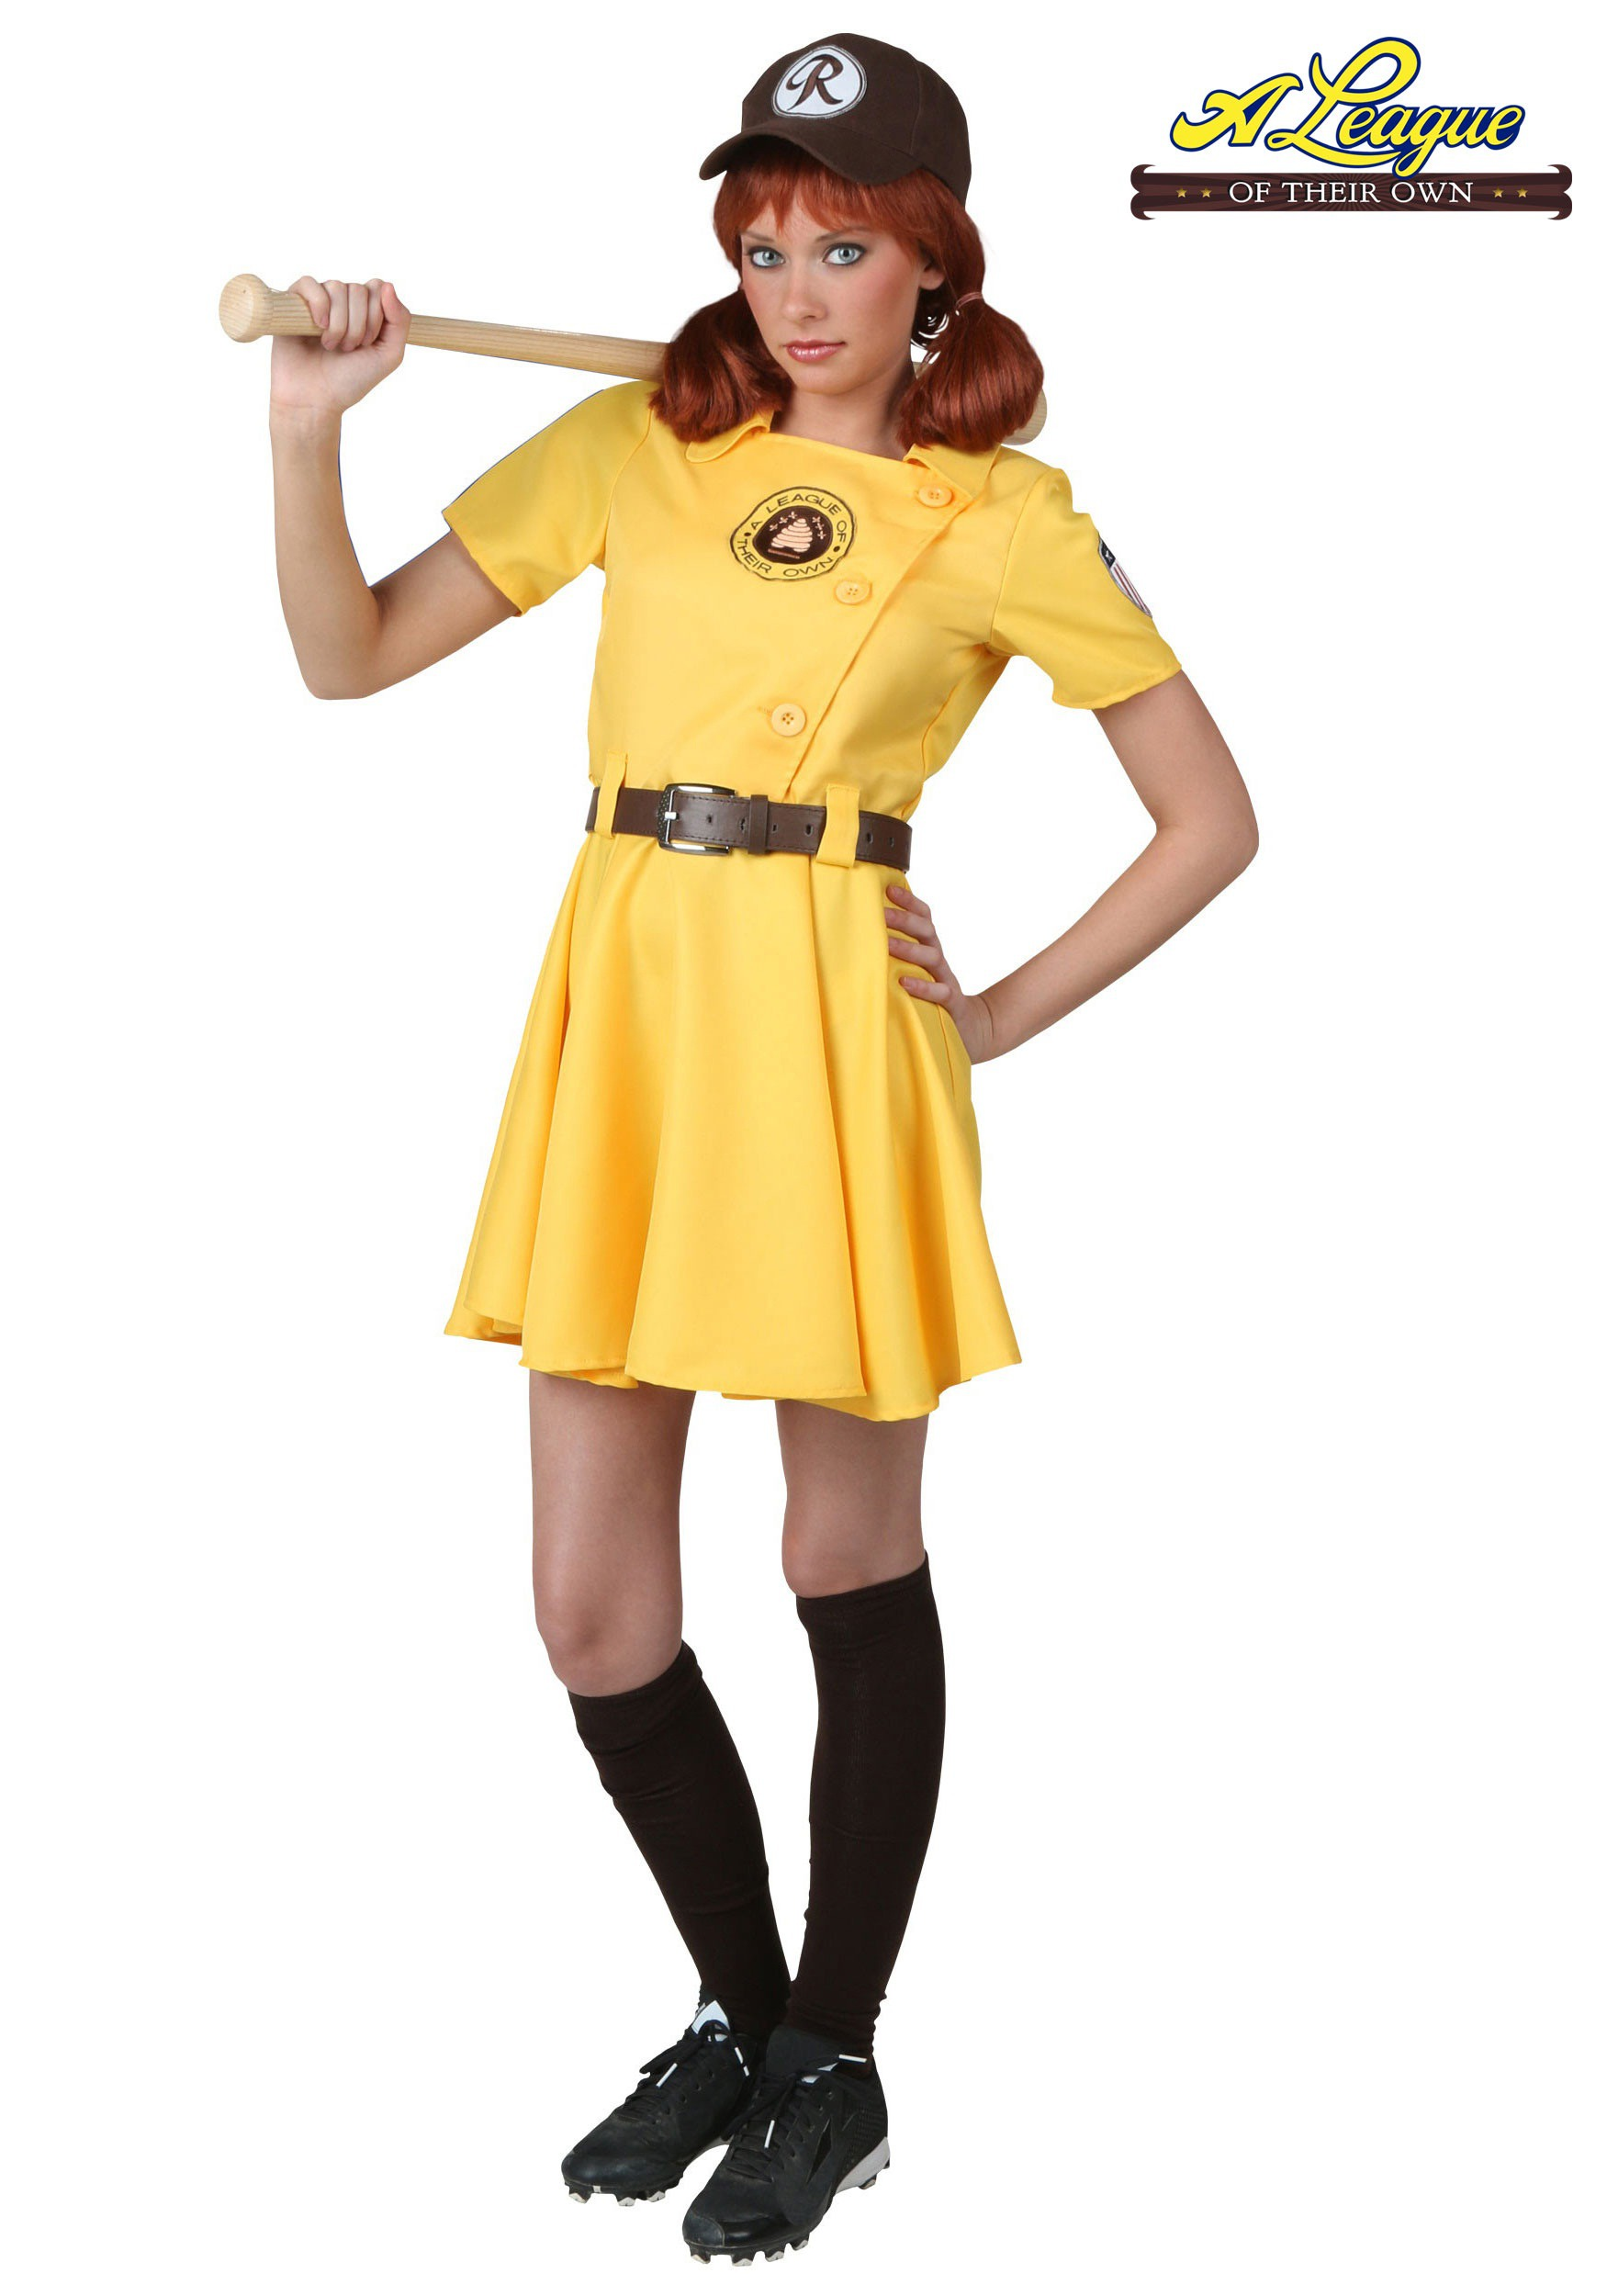 Women's A League of Their Own Kit Costume